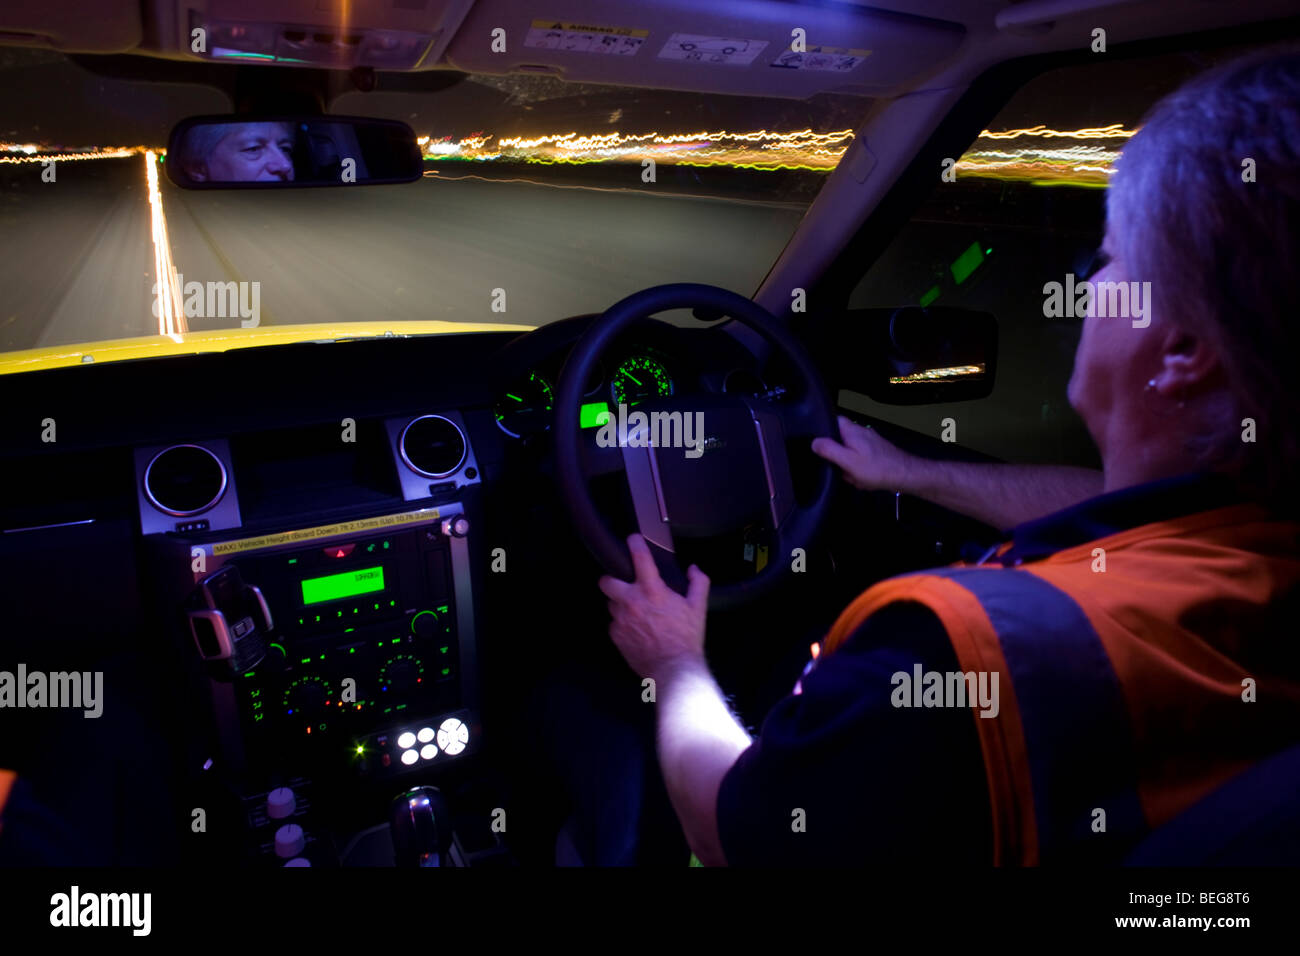 Airside Operations Safety Unit (AOSU) runway centre-line night drive inspection at Heathrow Airport. - Stock Image